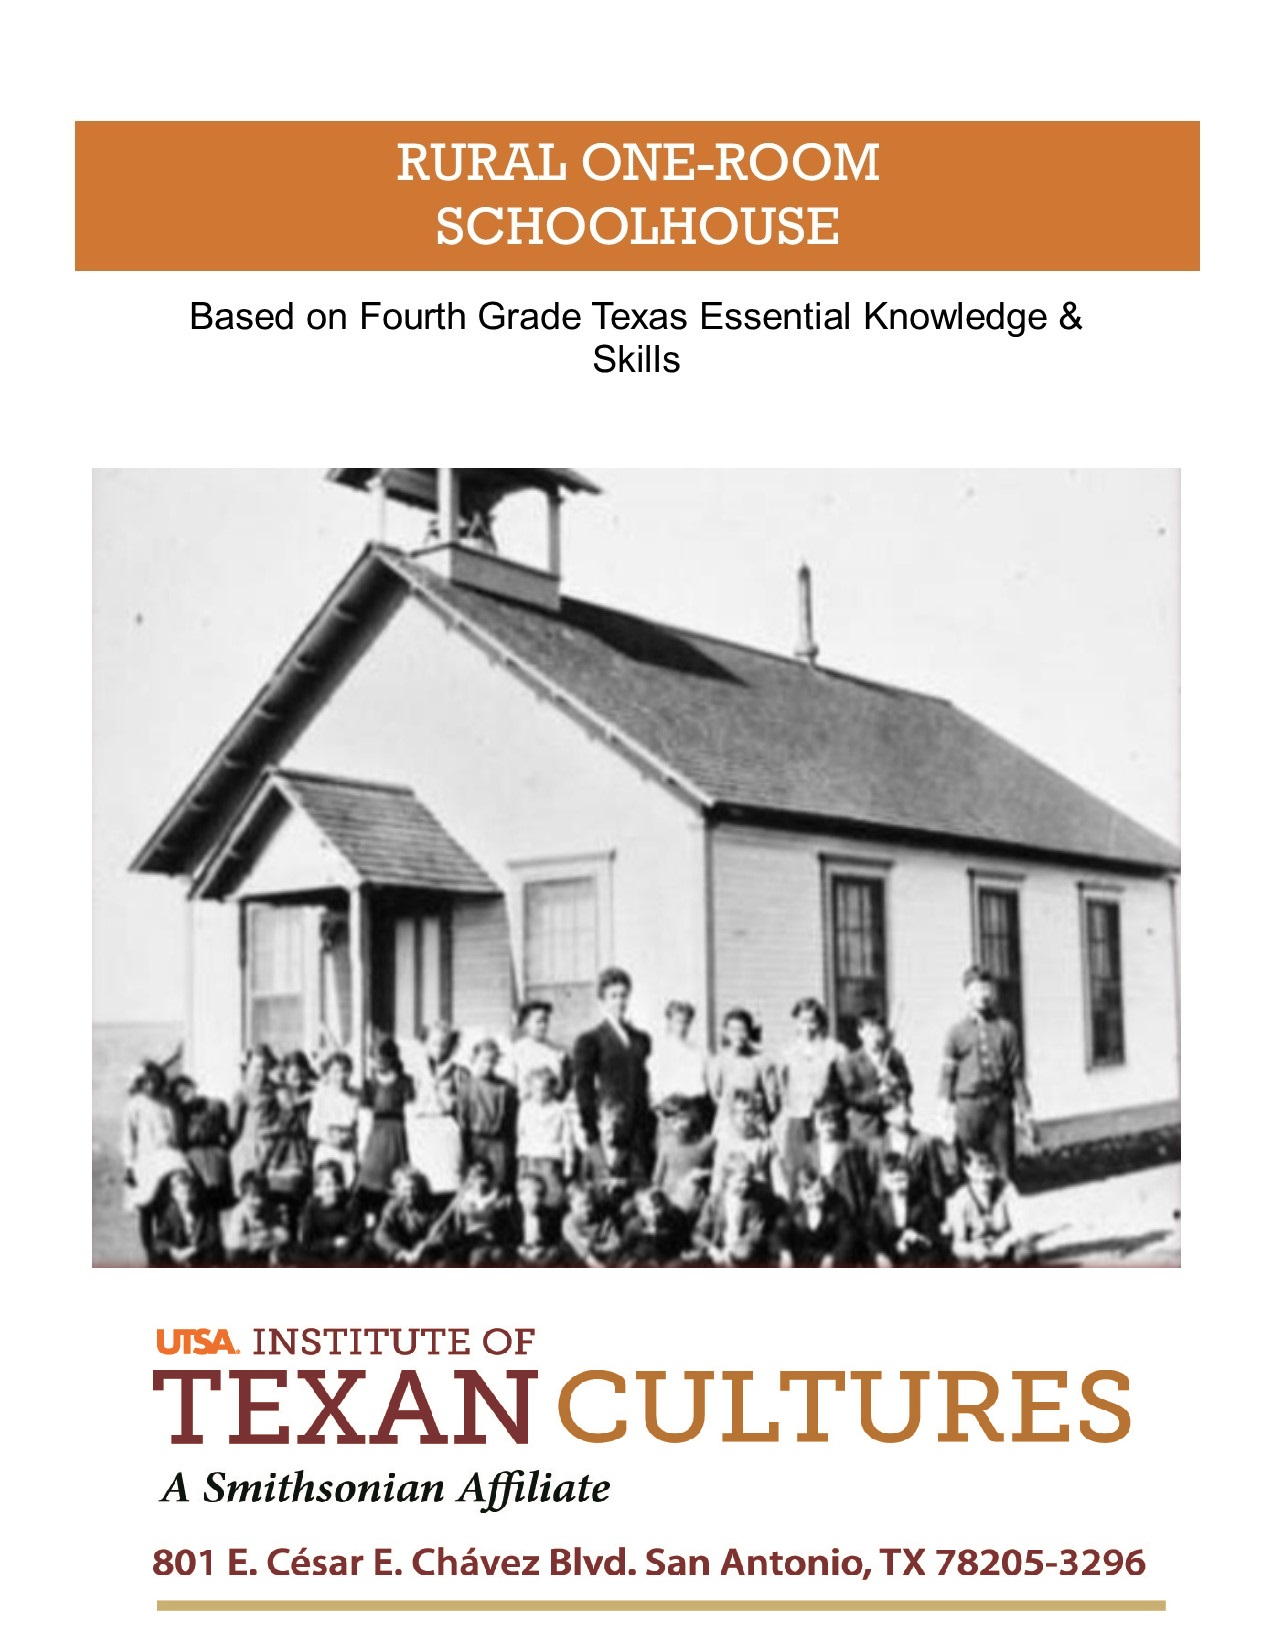 Rural One-Room Schoolhouse | UTSA Institute Of Texan Cultures